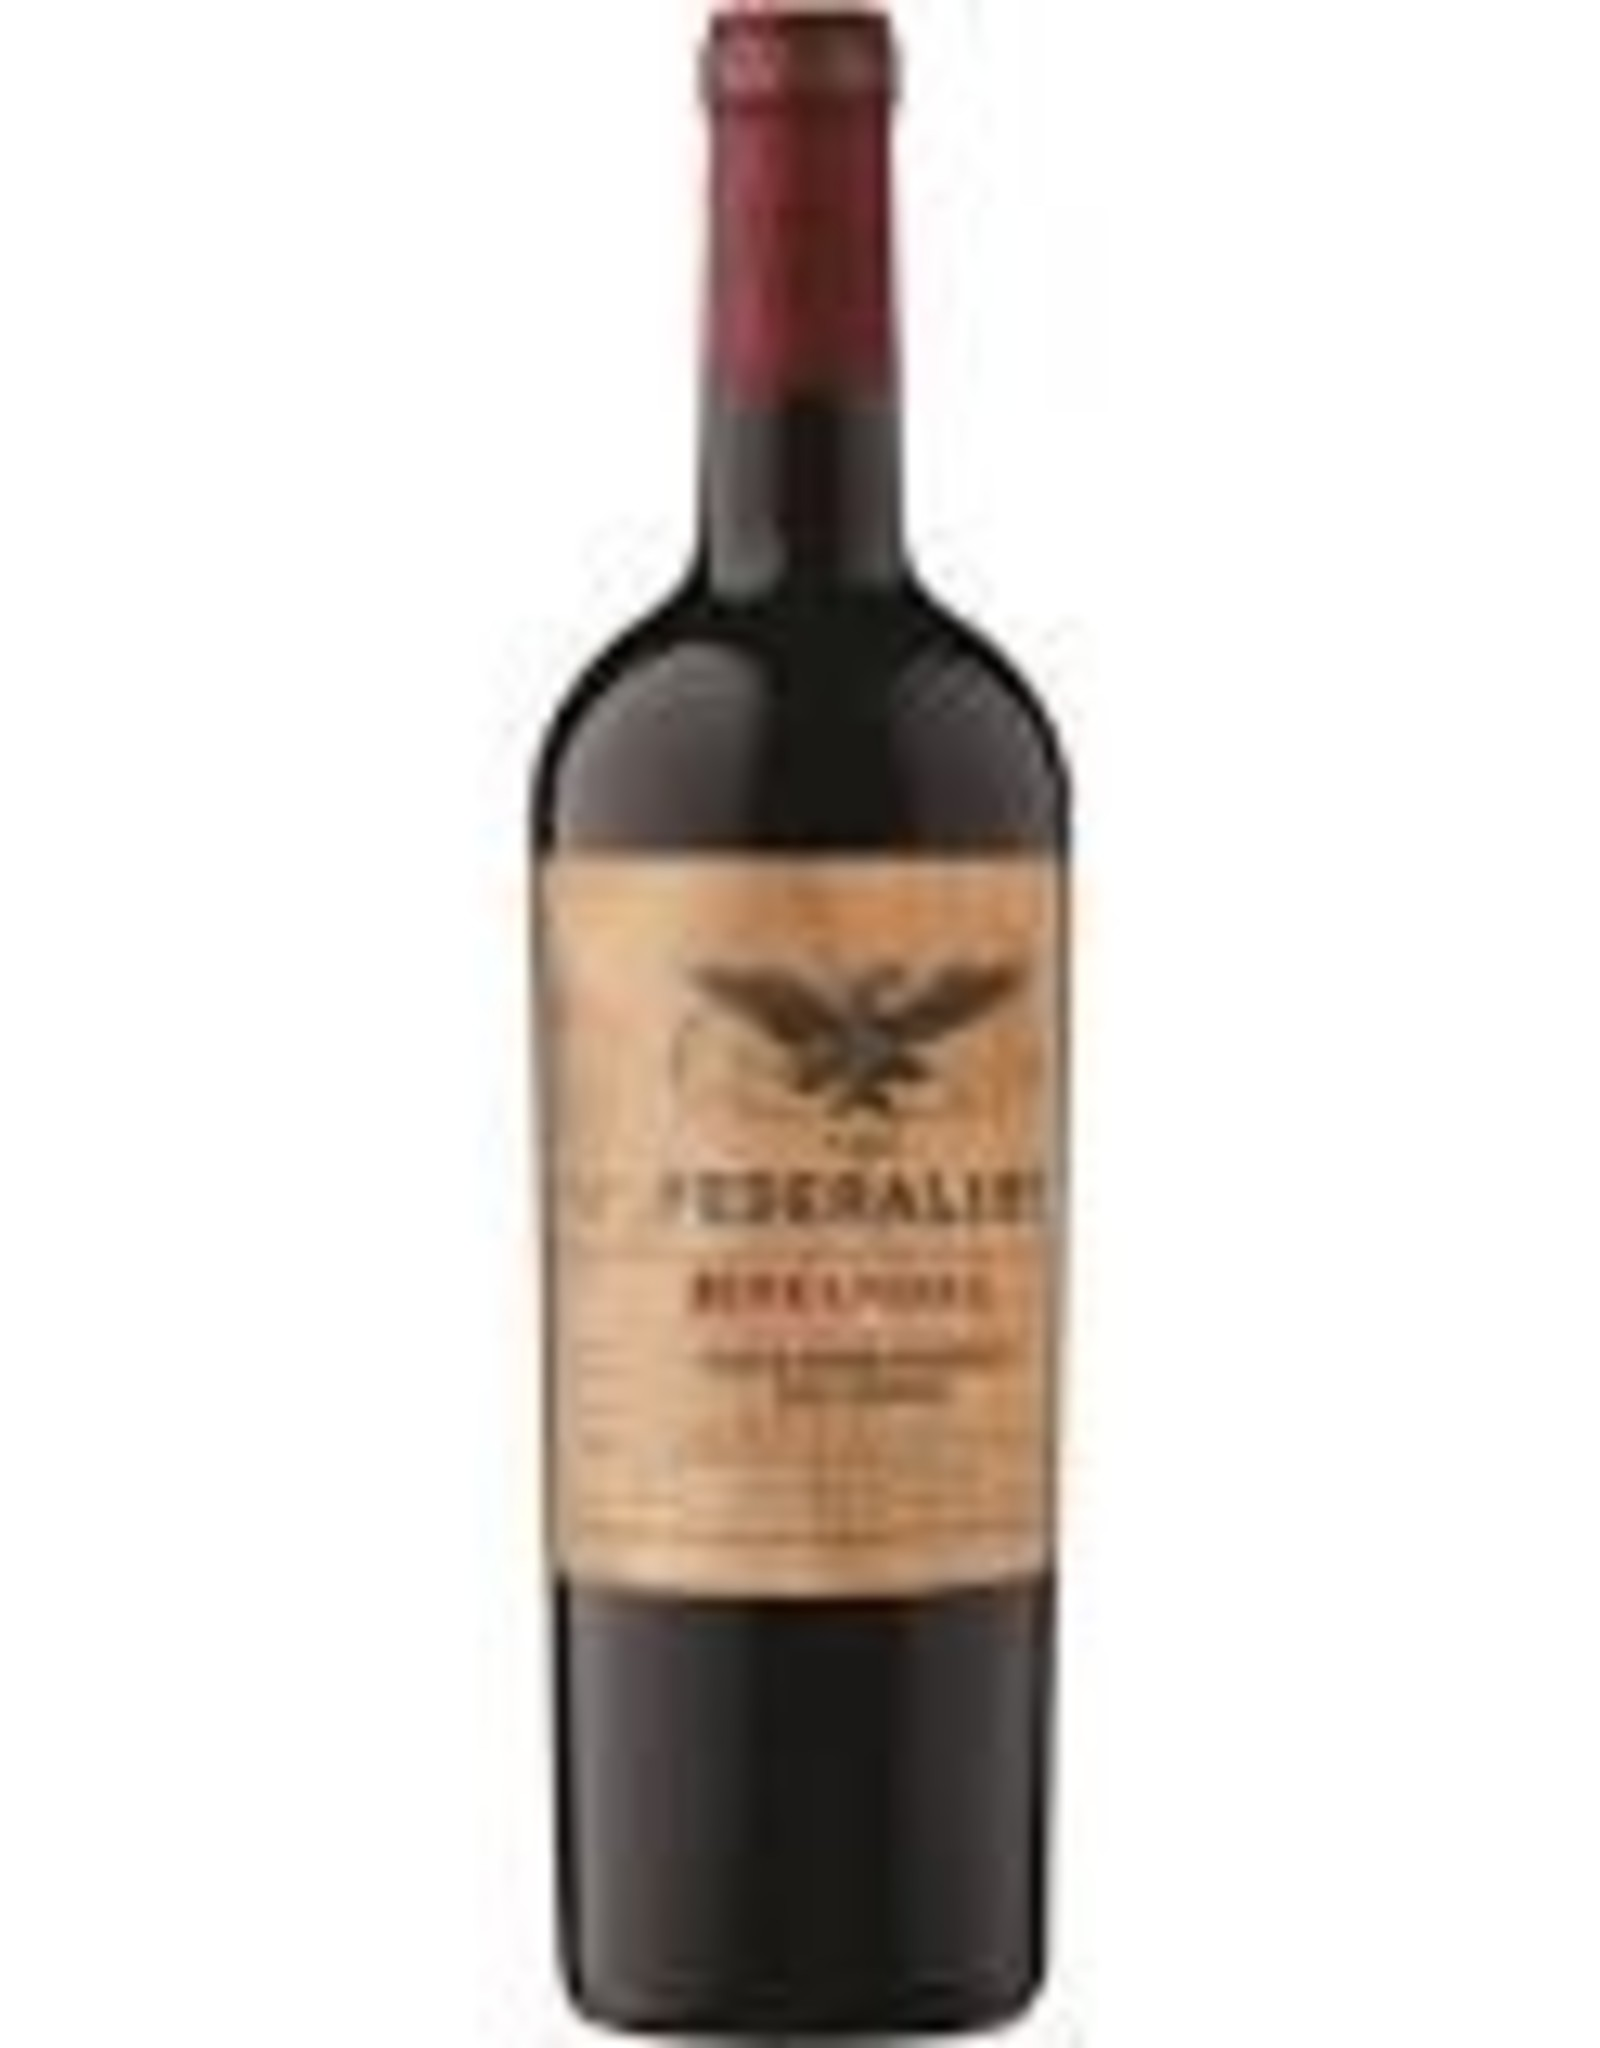 The Federalist Federalist Bourbon Barrel Aged Red